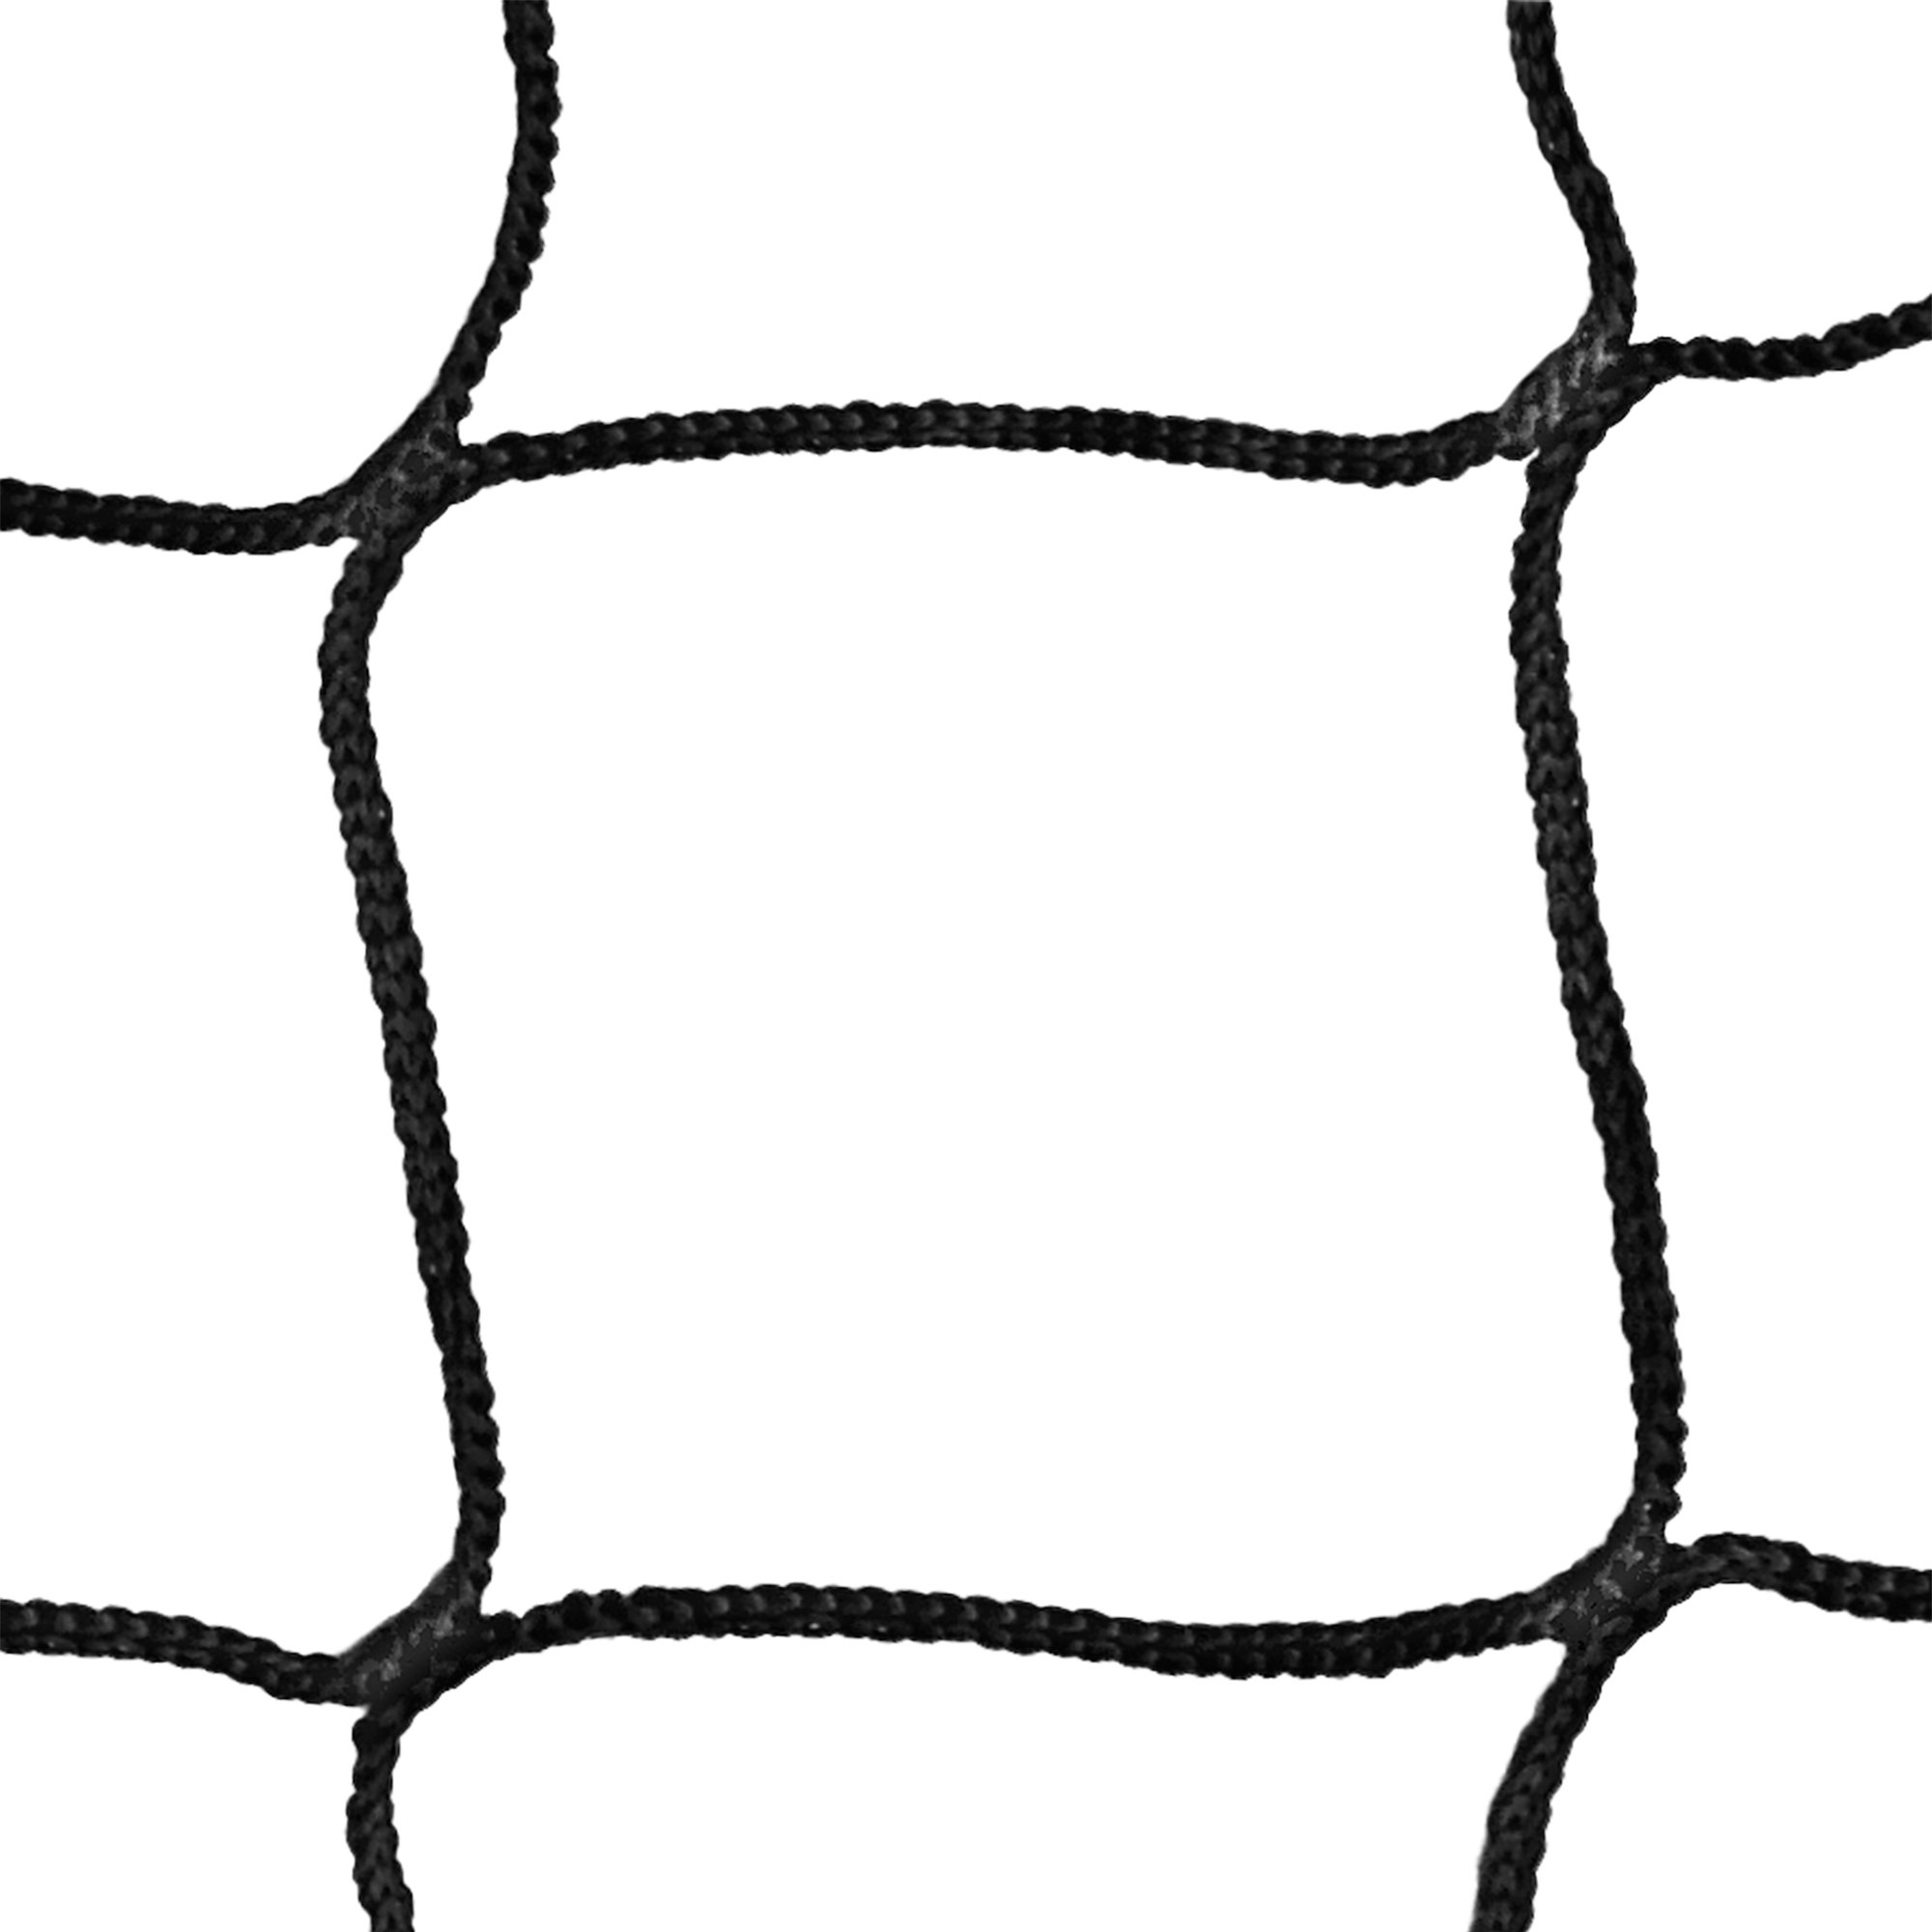 AGORA 4mm HTPP Net with straps for 7'x14' Rebounders